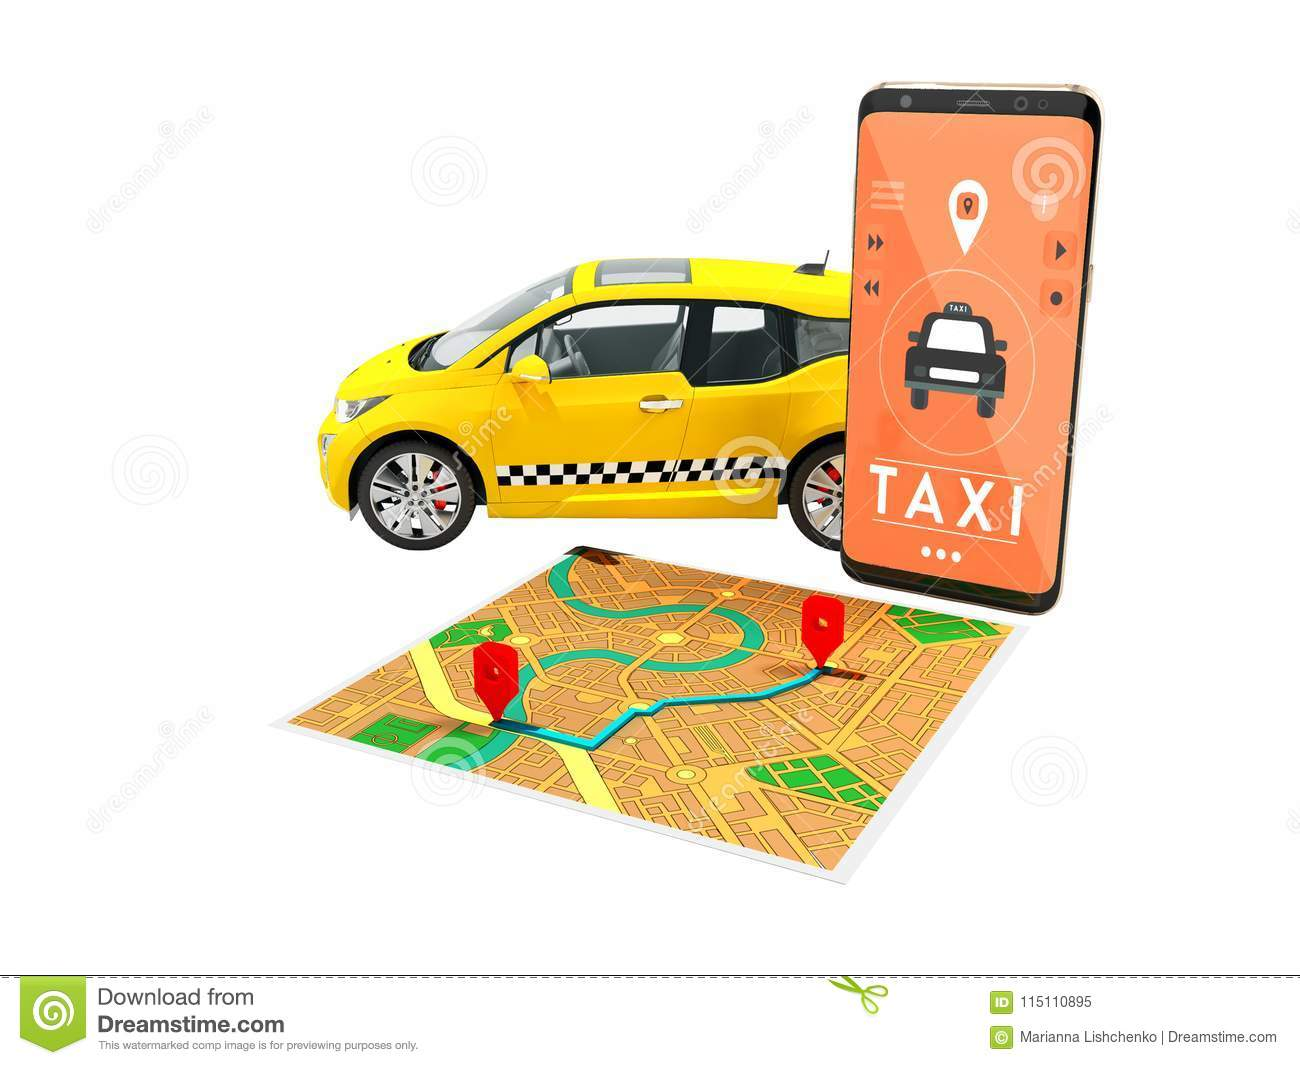 Taxi Electric Yellow With A Call On The Smartphone With A Map Route on